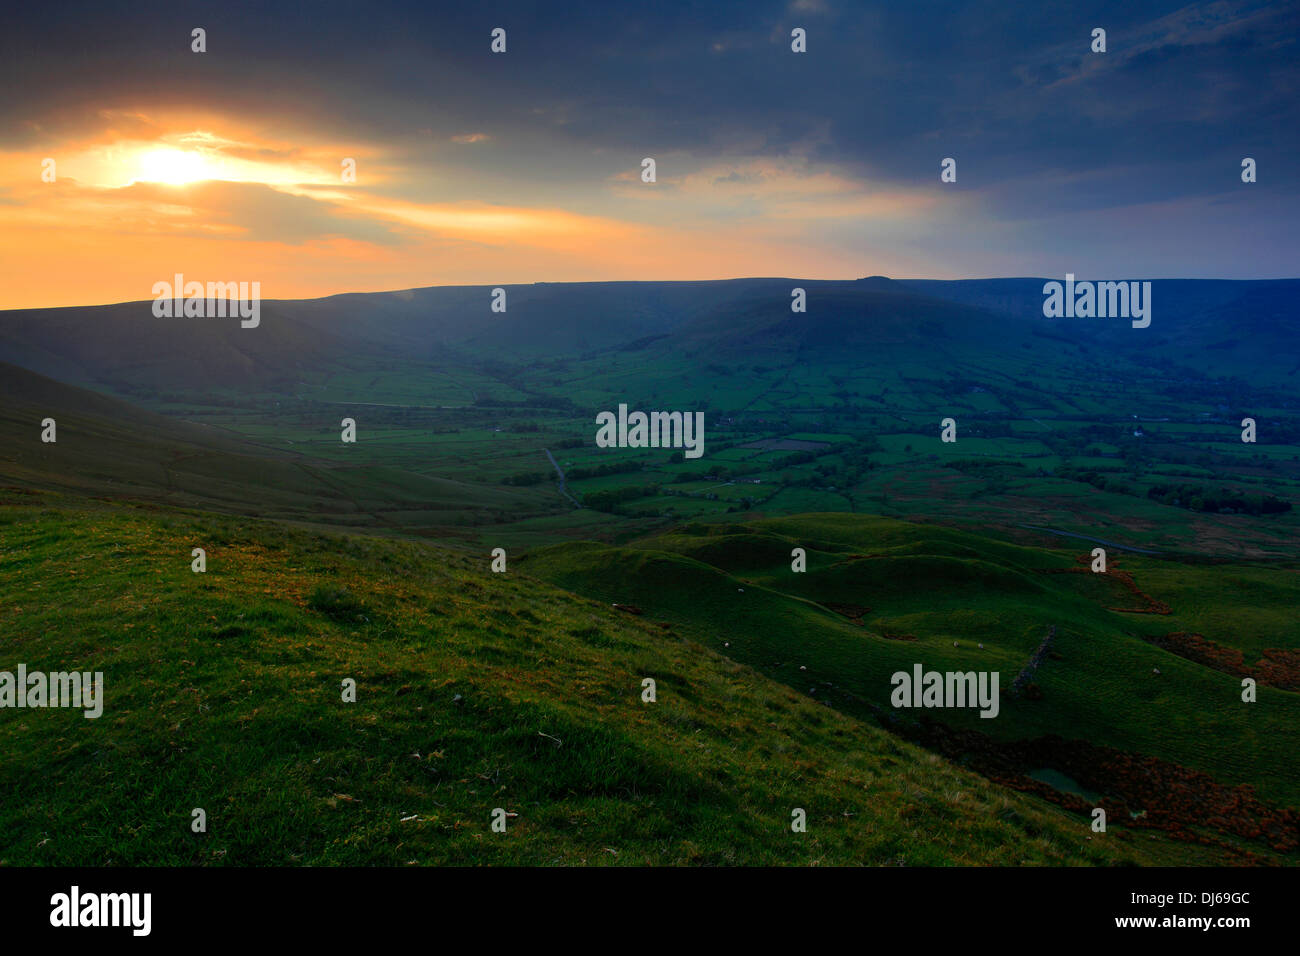 Sunset over the Vale of Edale, Edale Valley, Peak District National Park, Derbyshire Dales, England, UK Stock Photo